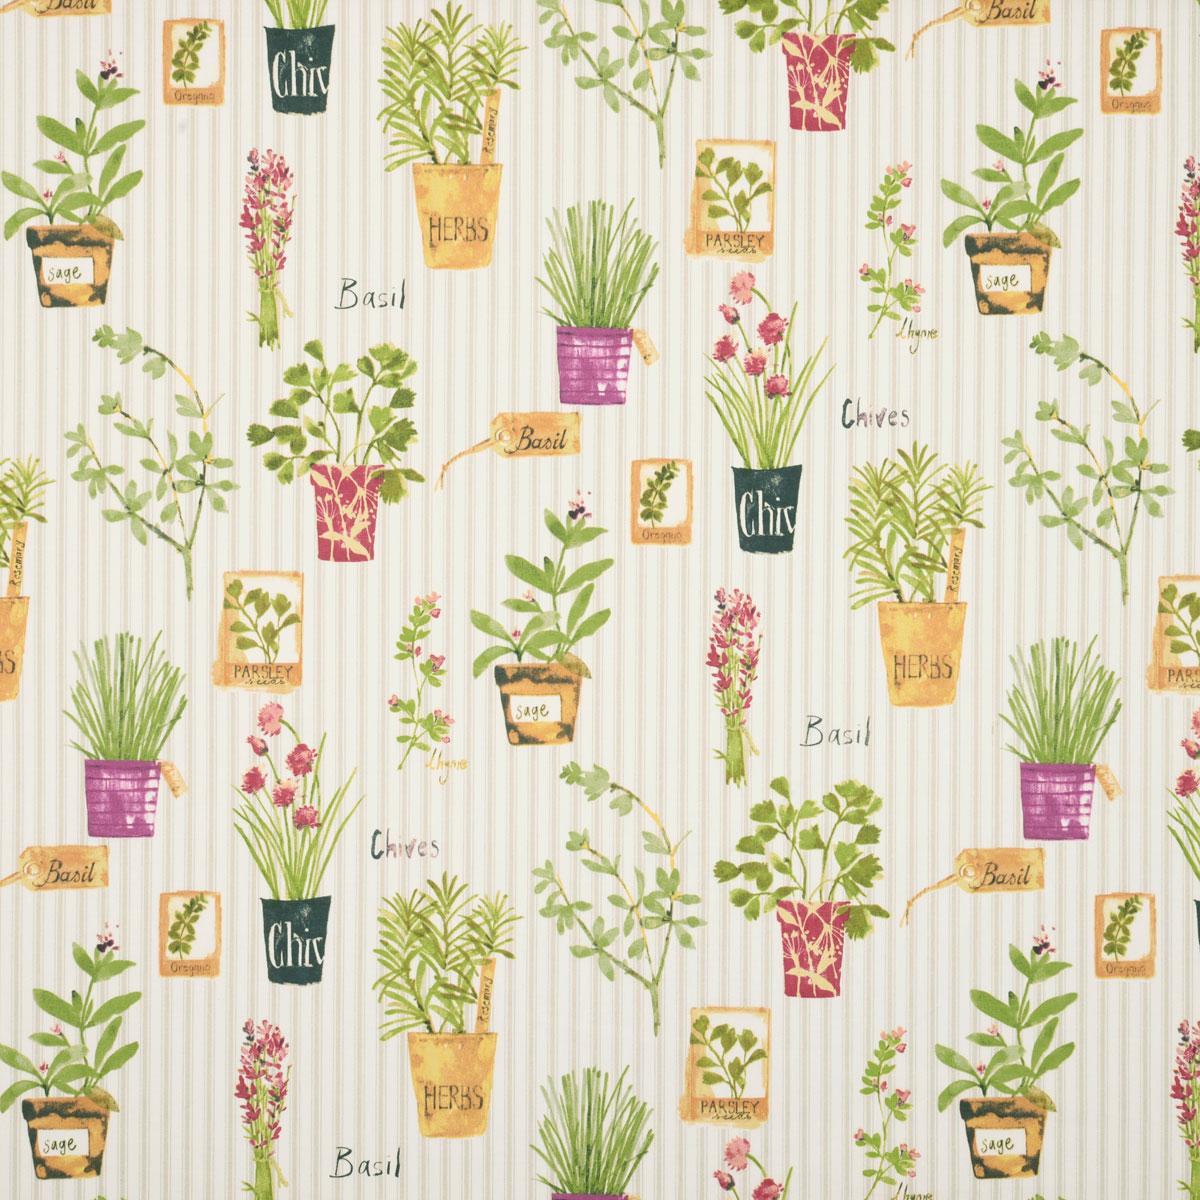 Stockists of Sage Herb Pots Curtain Fabric